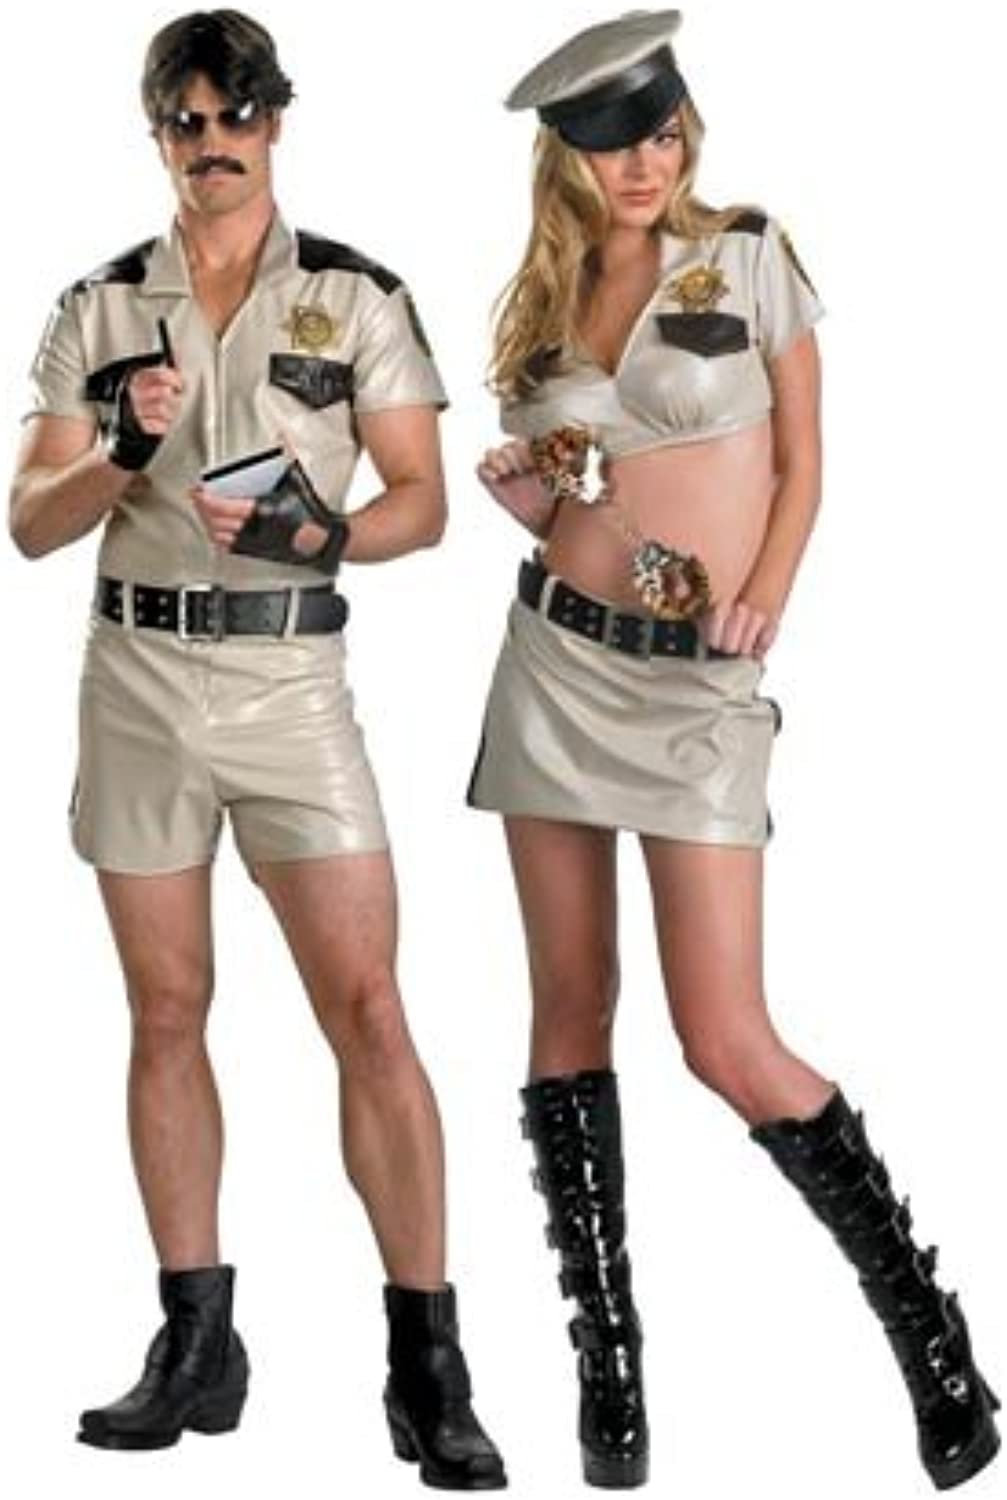 Disguise Reno 911 Female Deluxe Adult Costume 1214